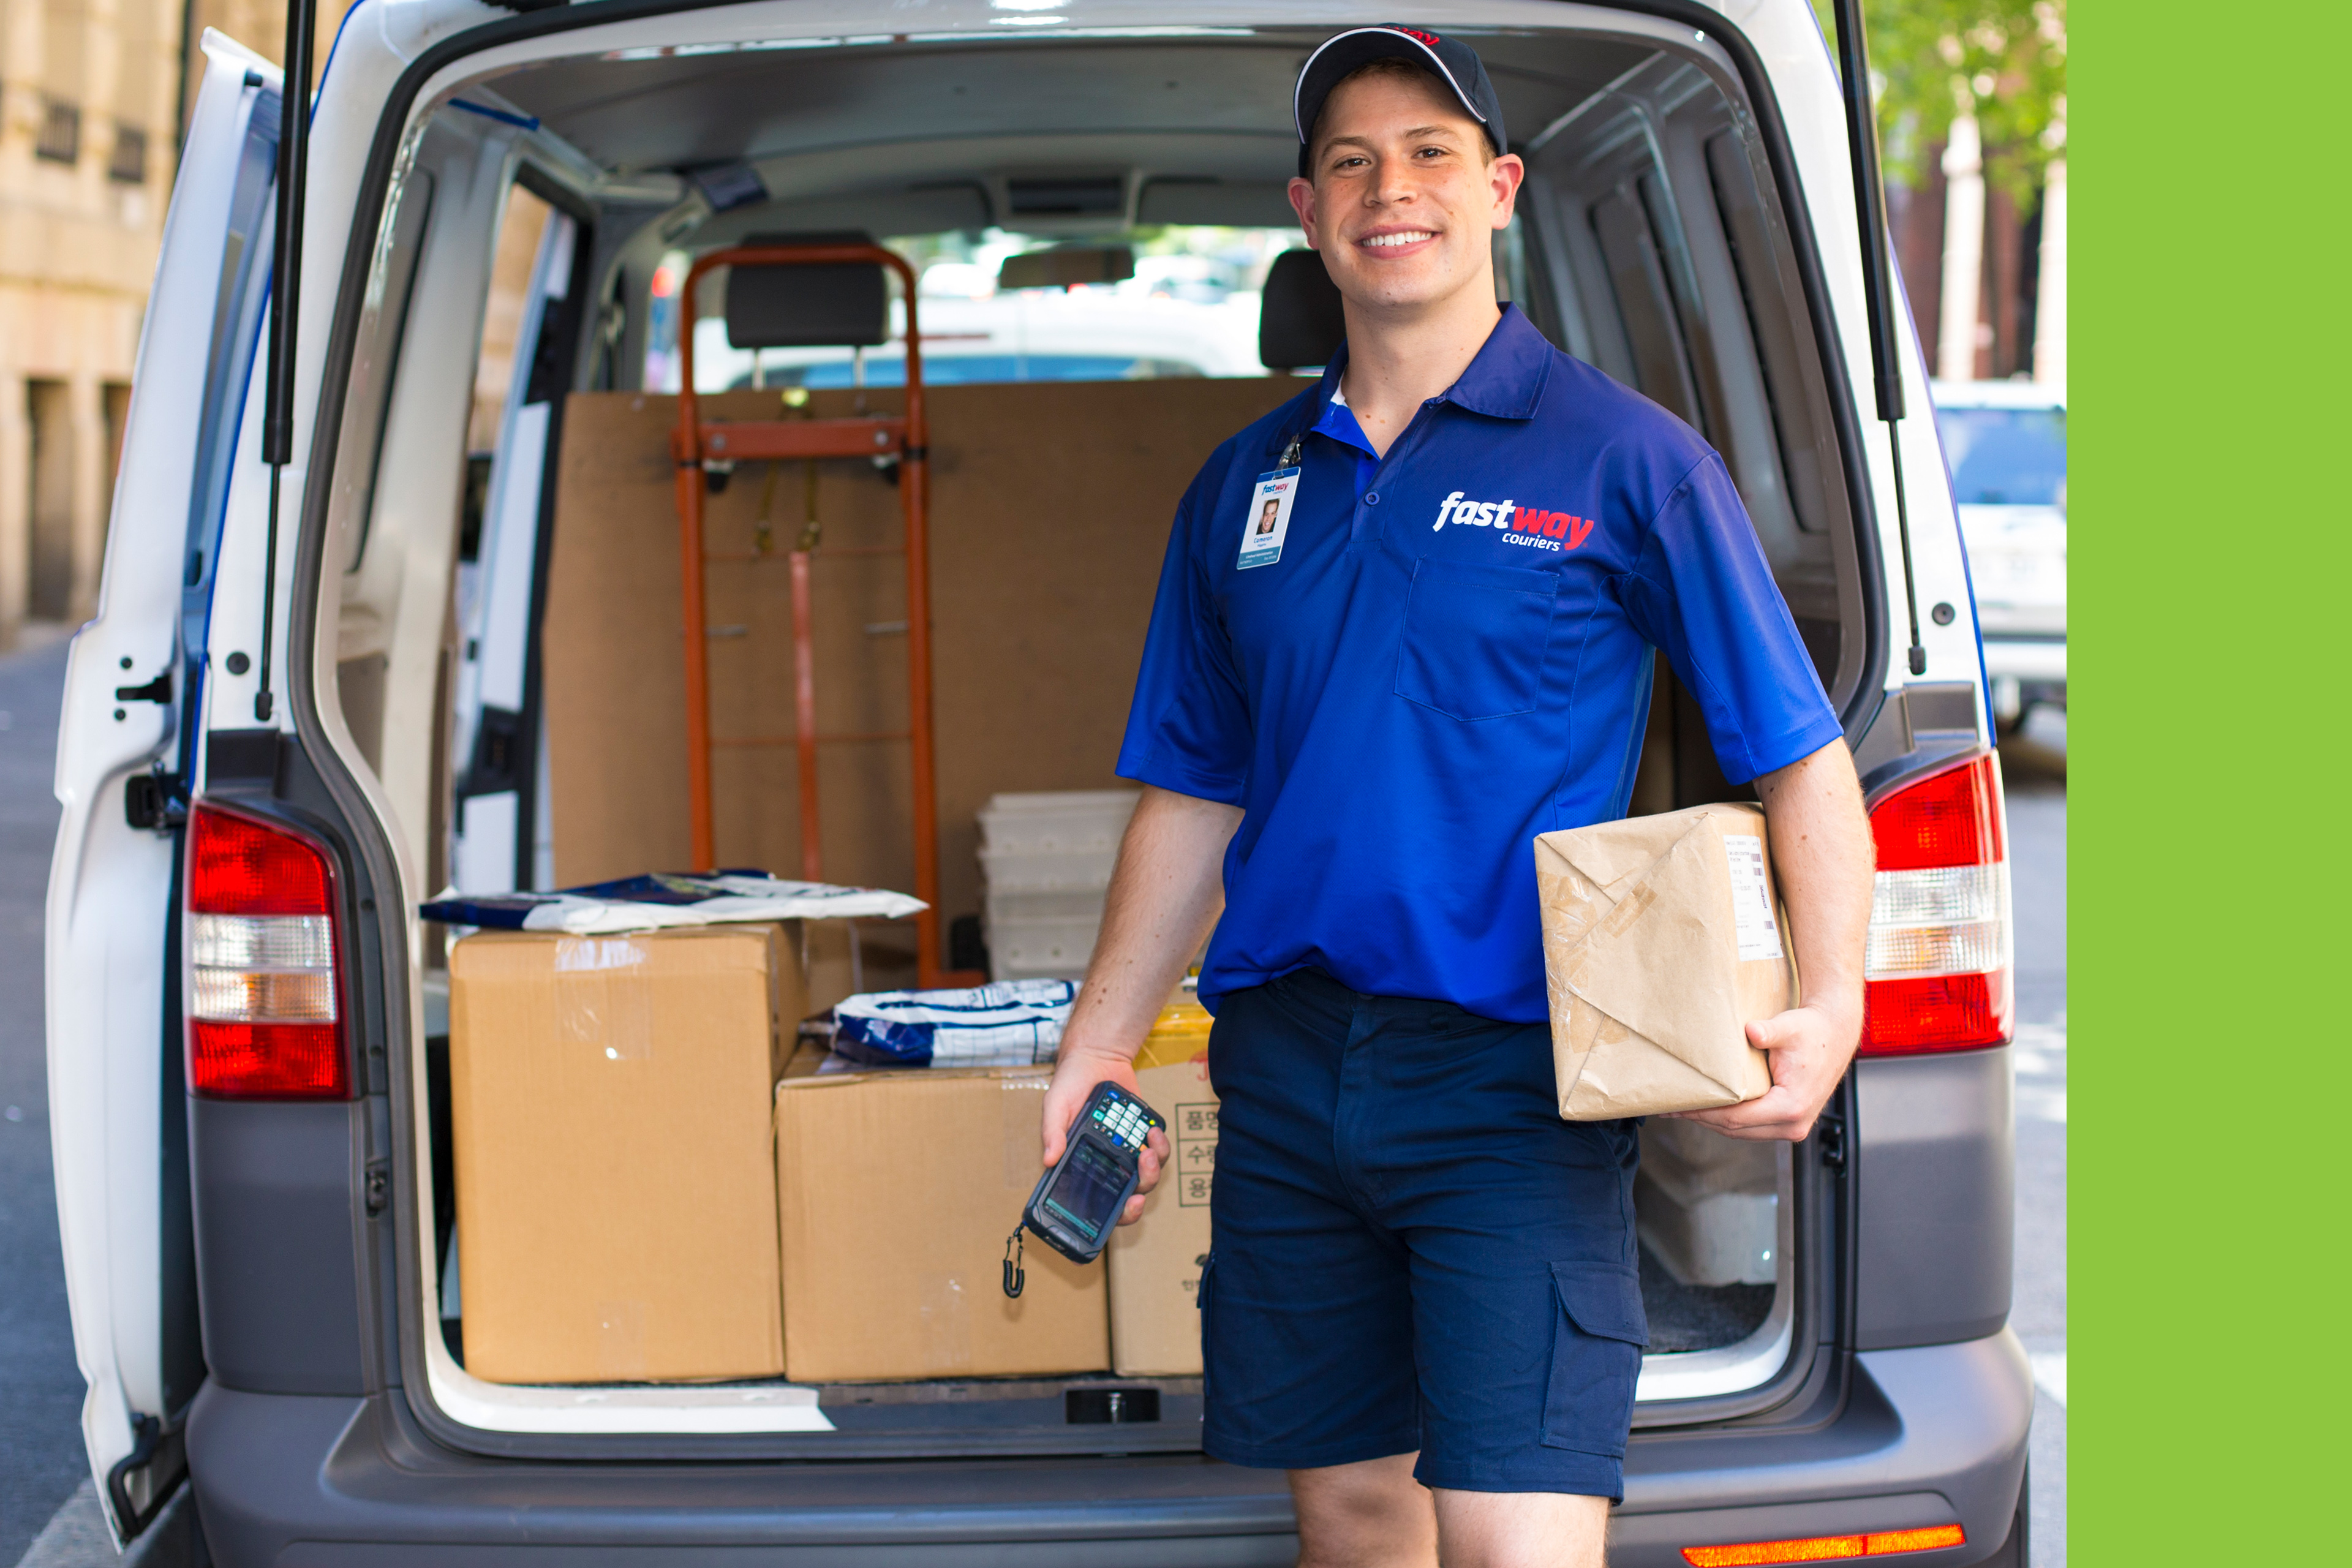 Courier Franchise business in transport/logistics. Caringbah, Sydney